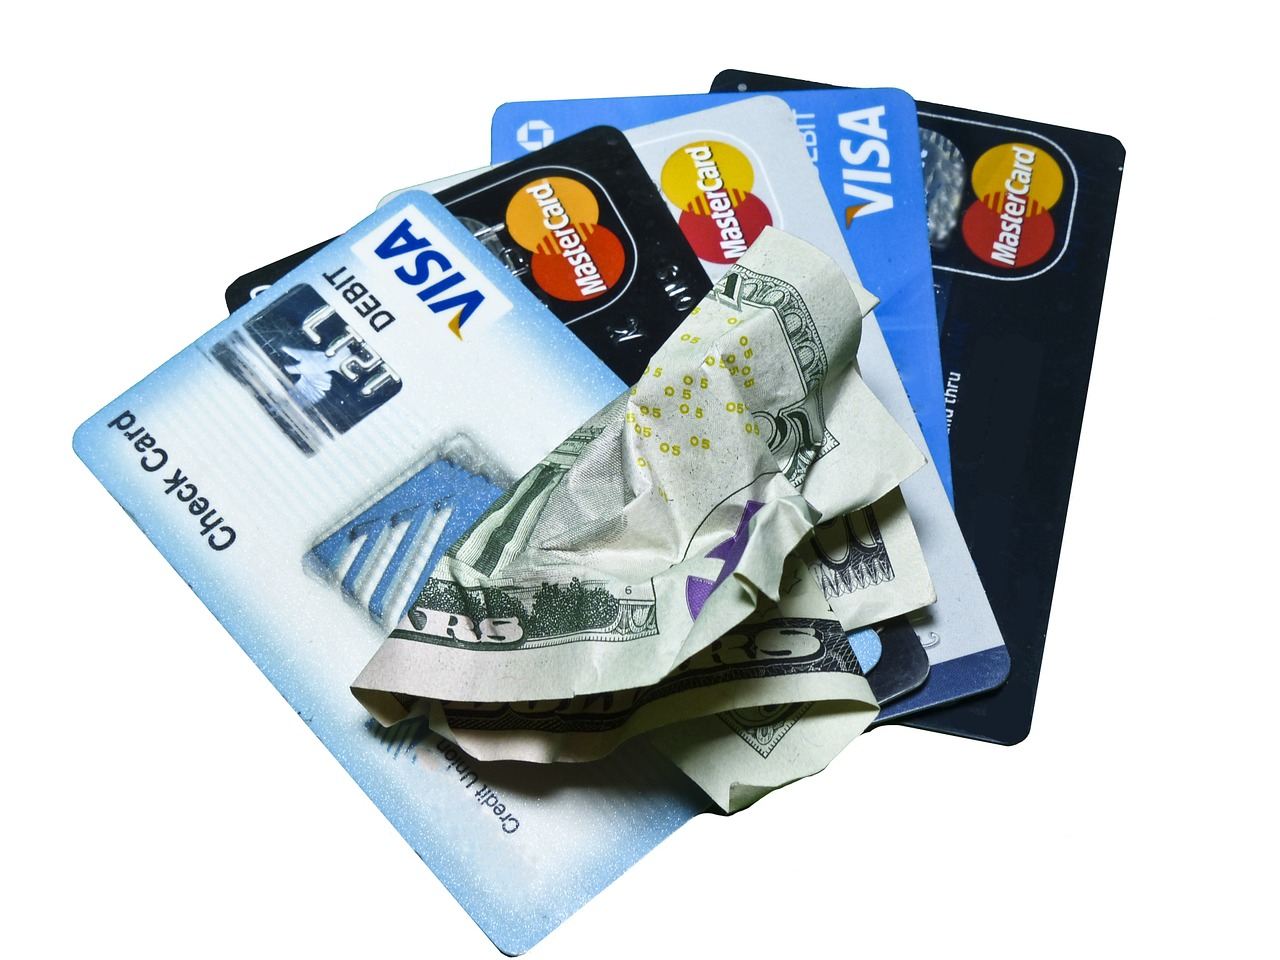 kinds of credit cards with a dollar bill